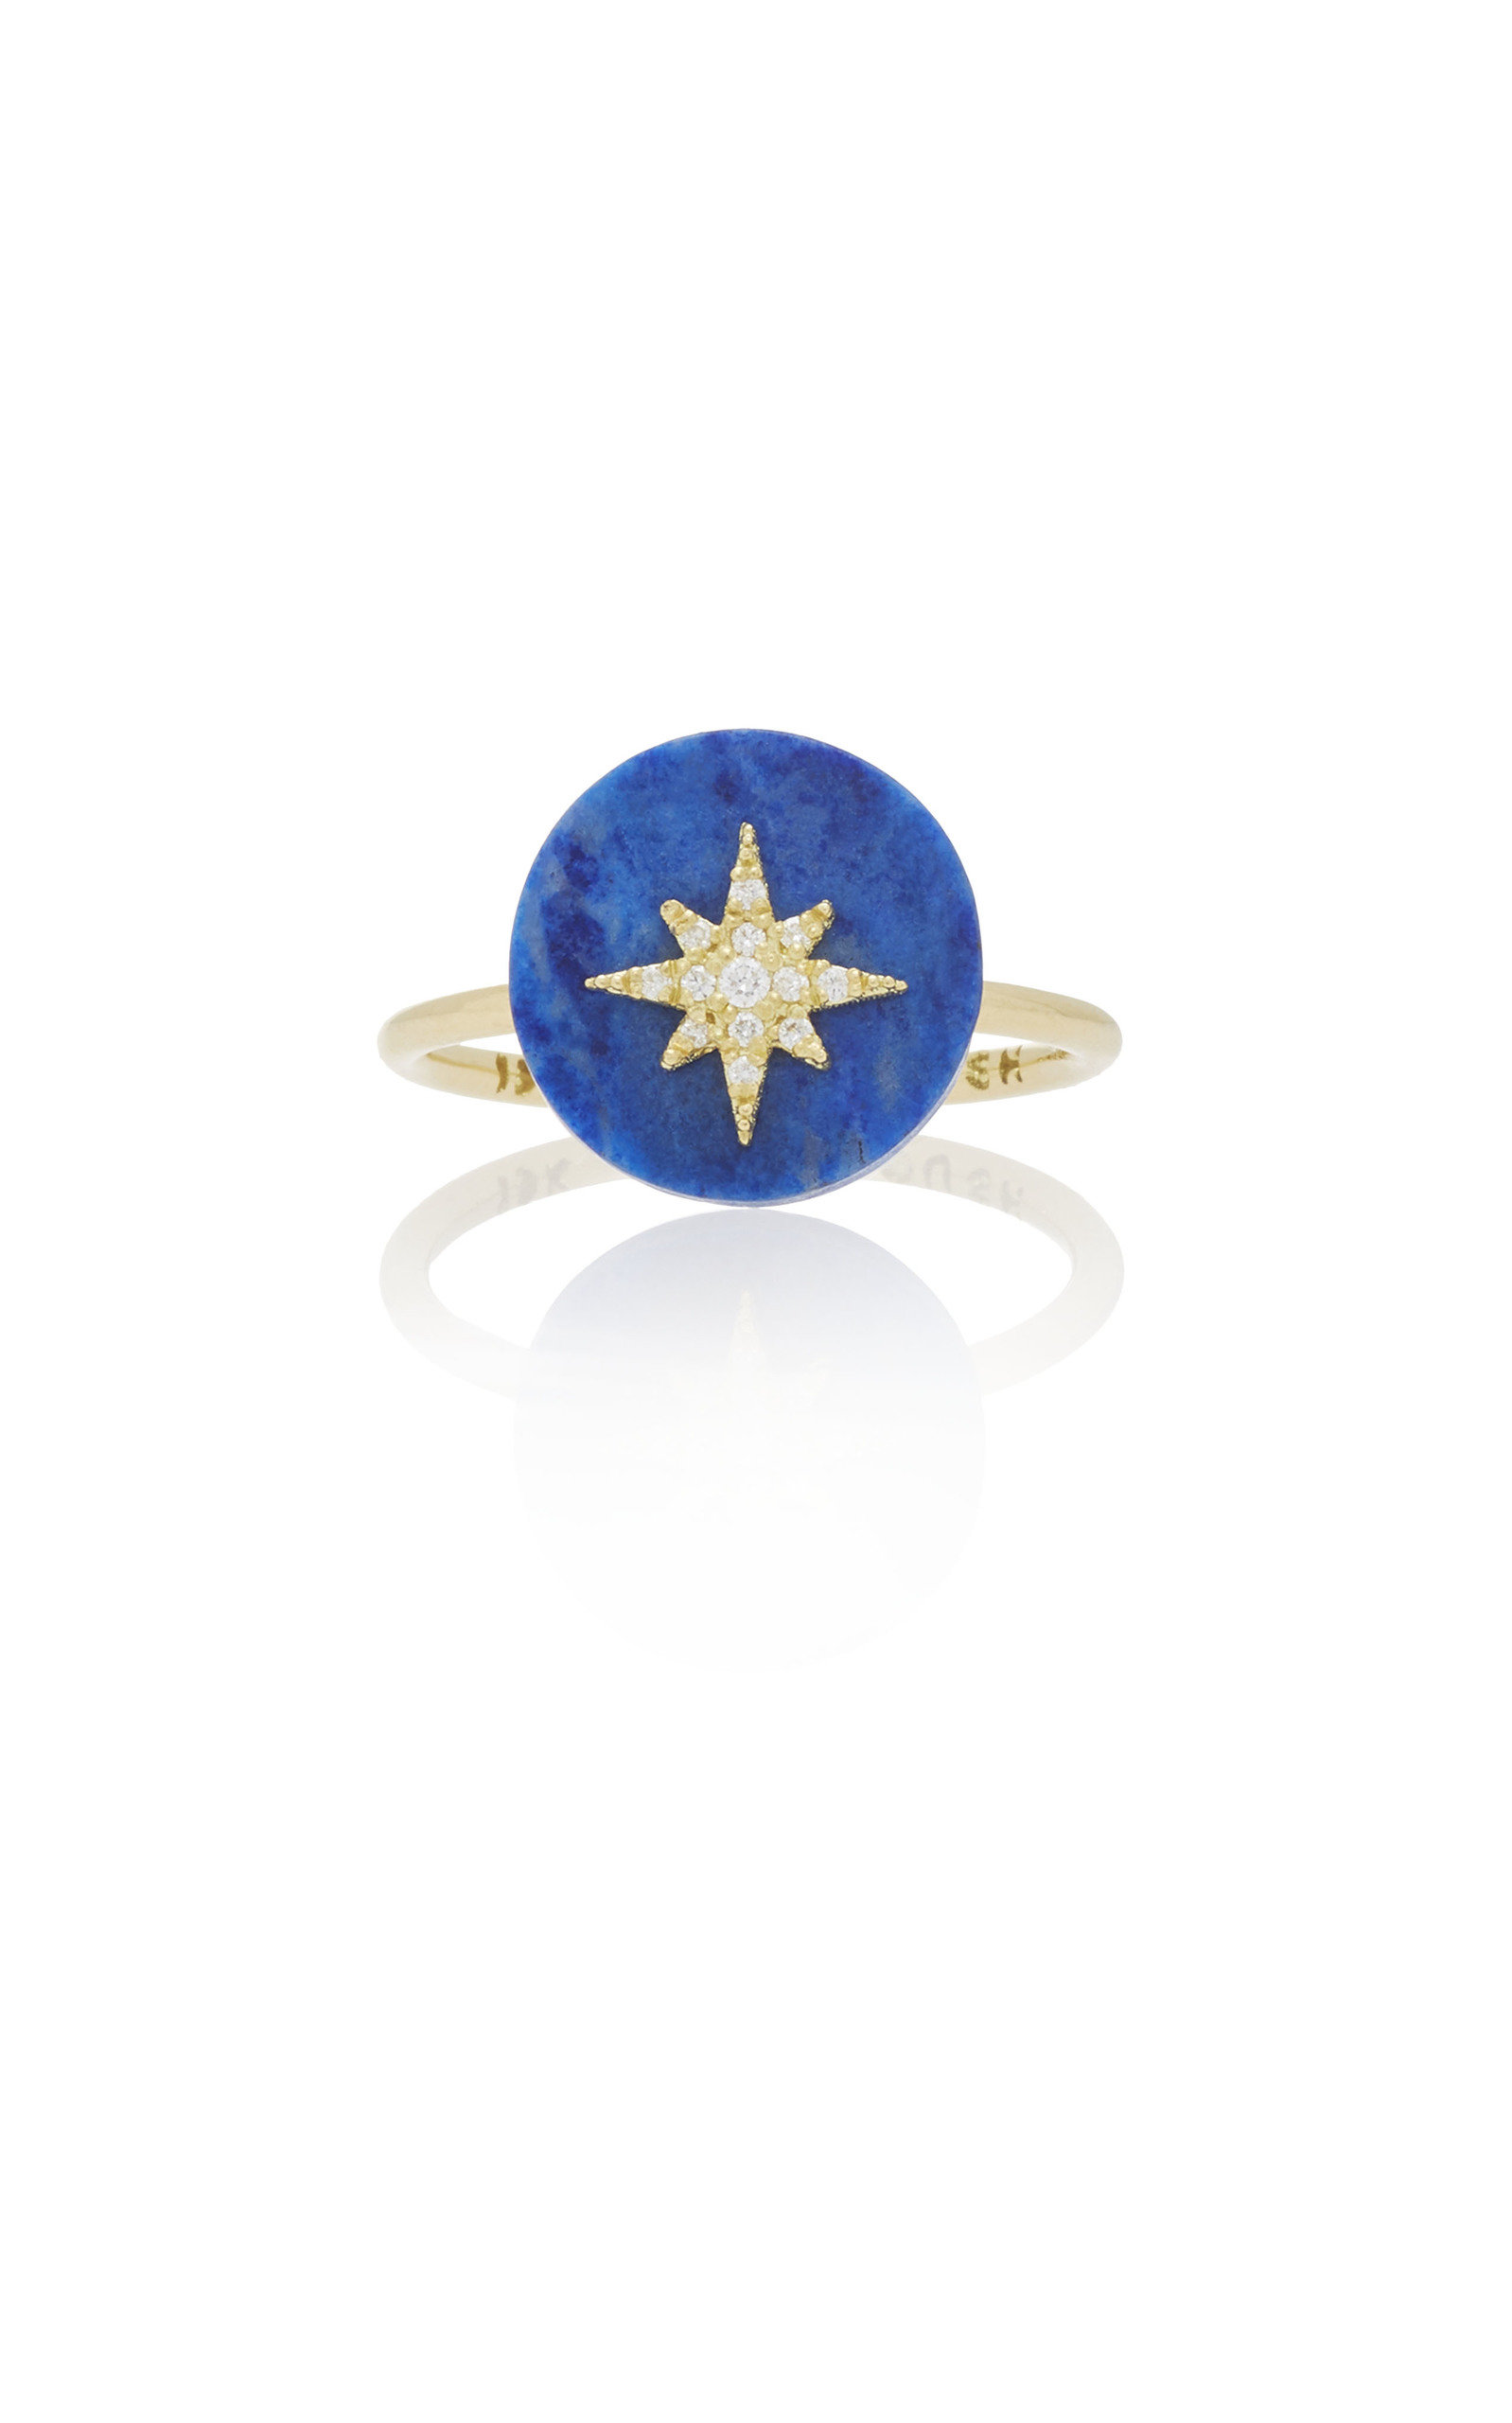 NOUSH JEWELRY Coexist Northstar On Lapis Lazuli Ring in Blue